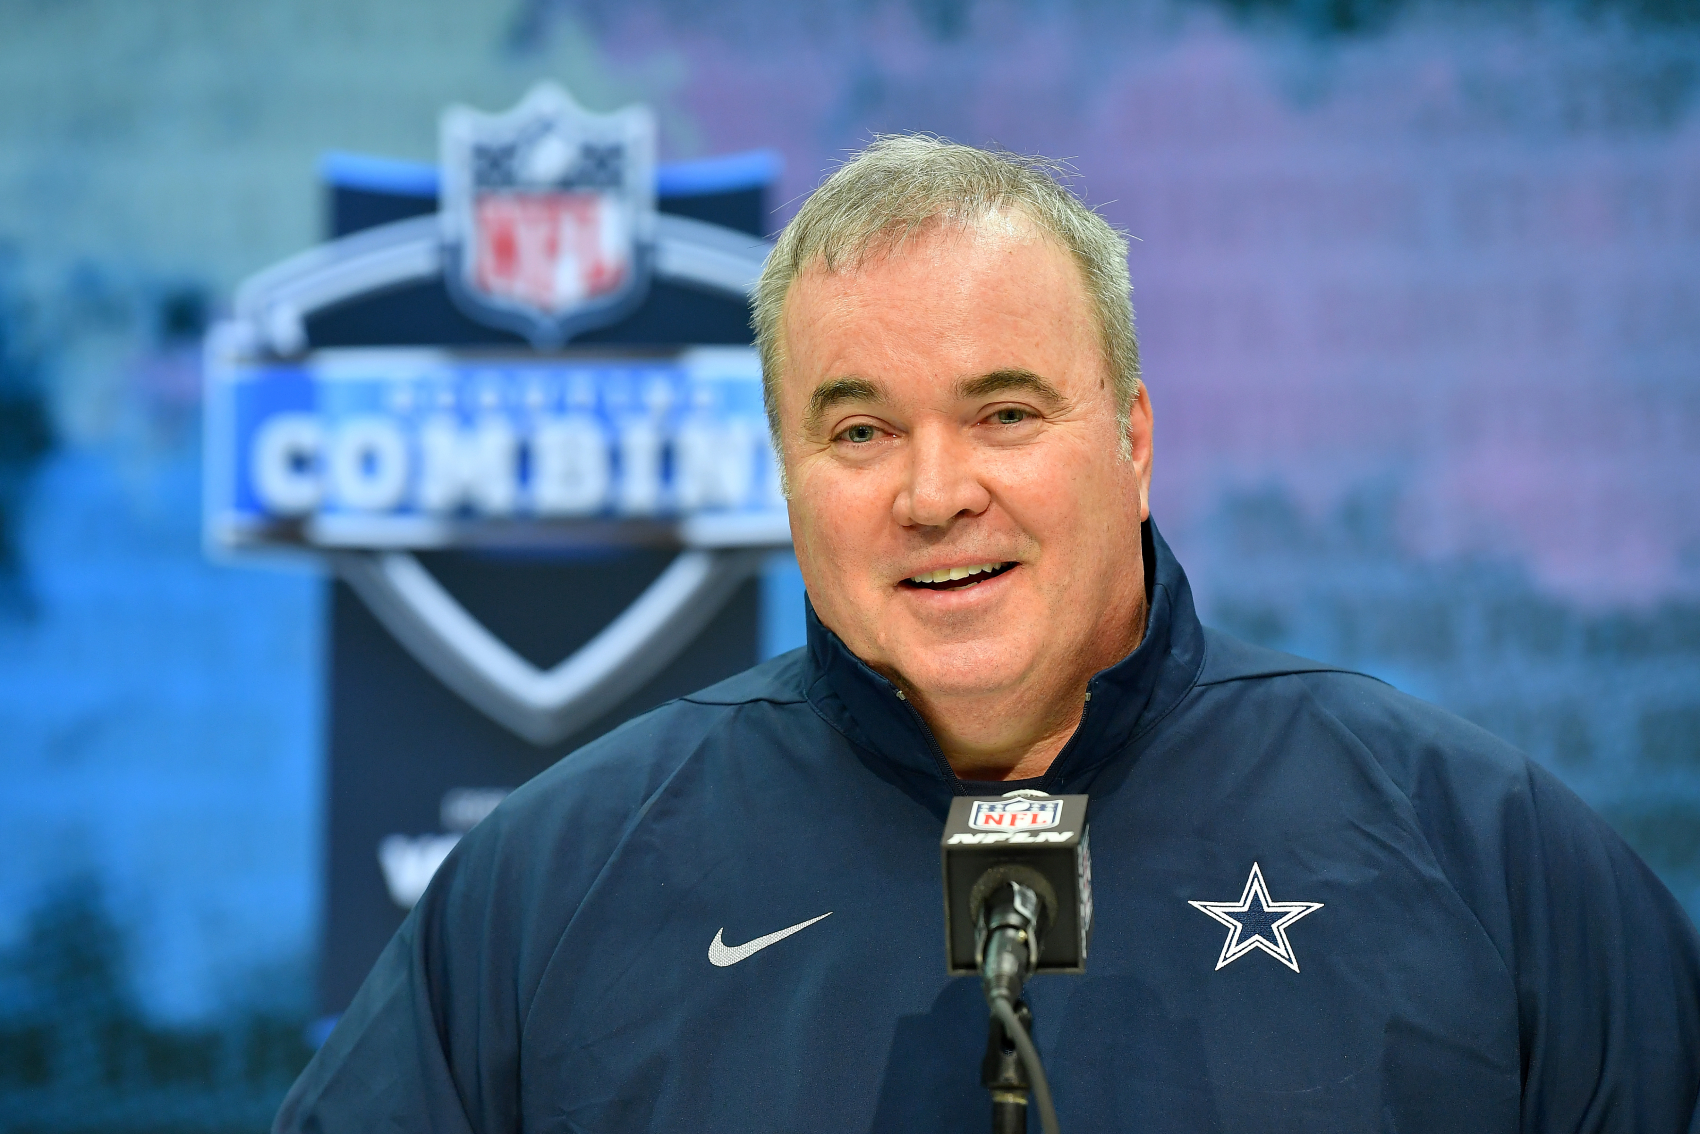 Being the coach of the Cowboys, Mike McCarthy has a lot of pressure on him. However, he just did his best impression of Bill Belichick.